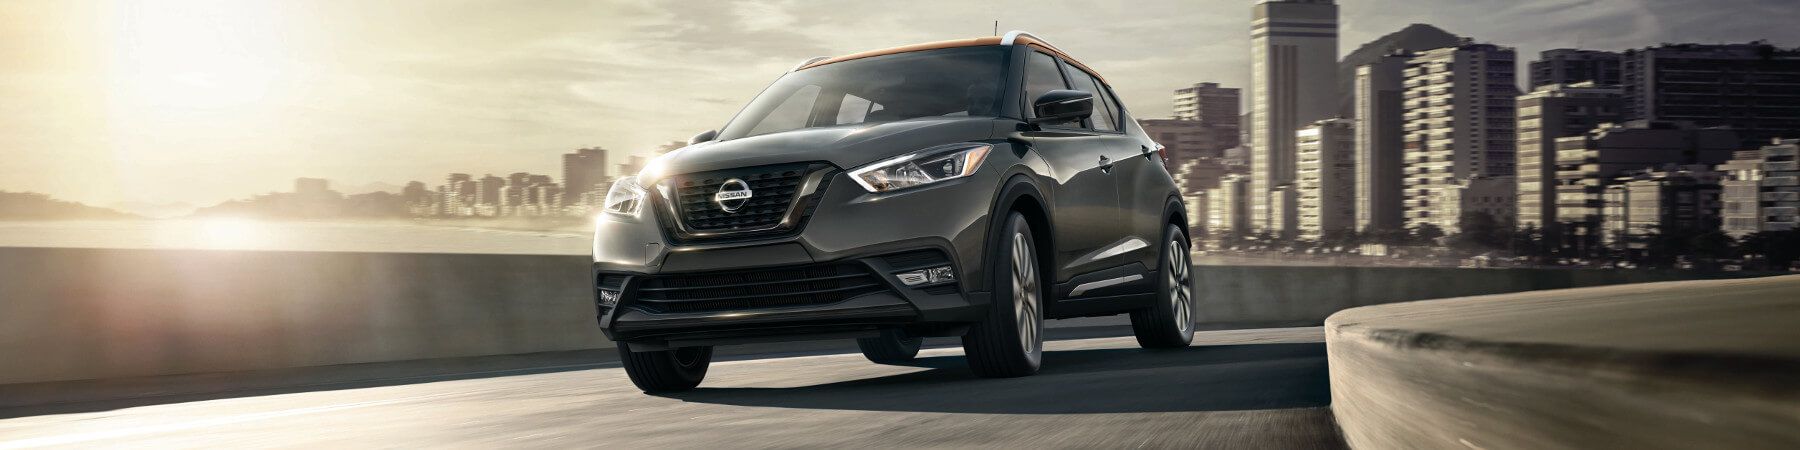 A 2018 Nissan Kicks driving out of the city